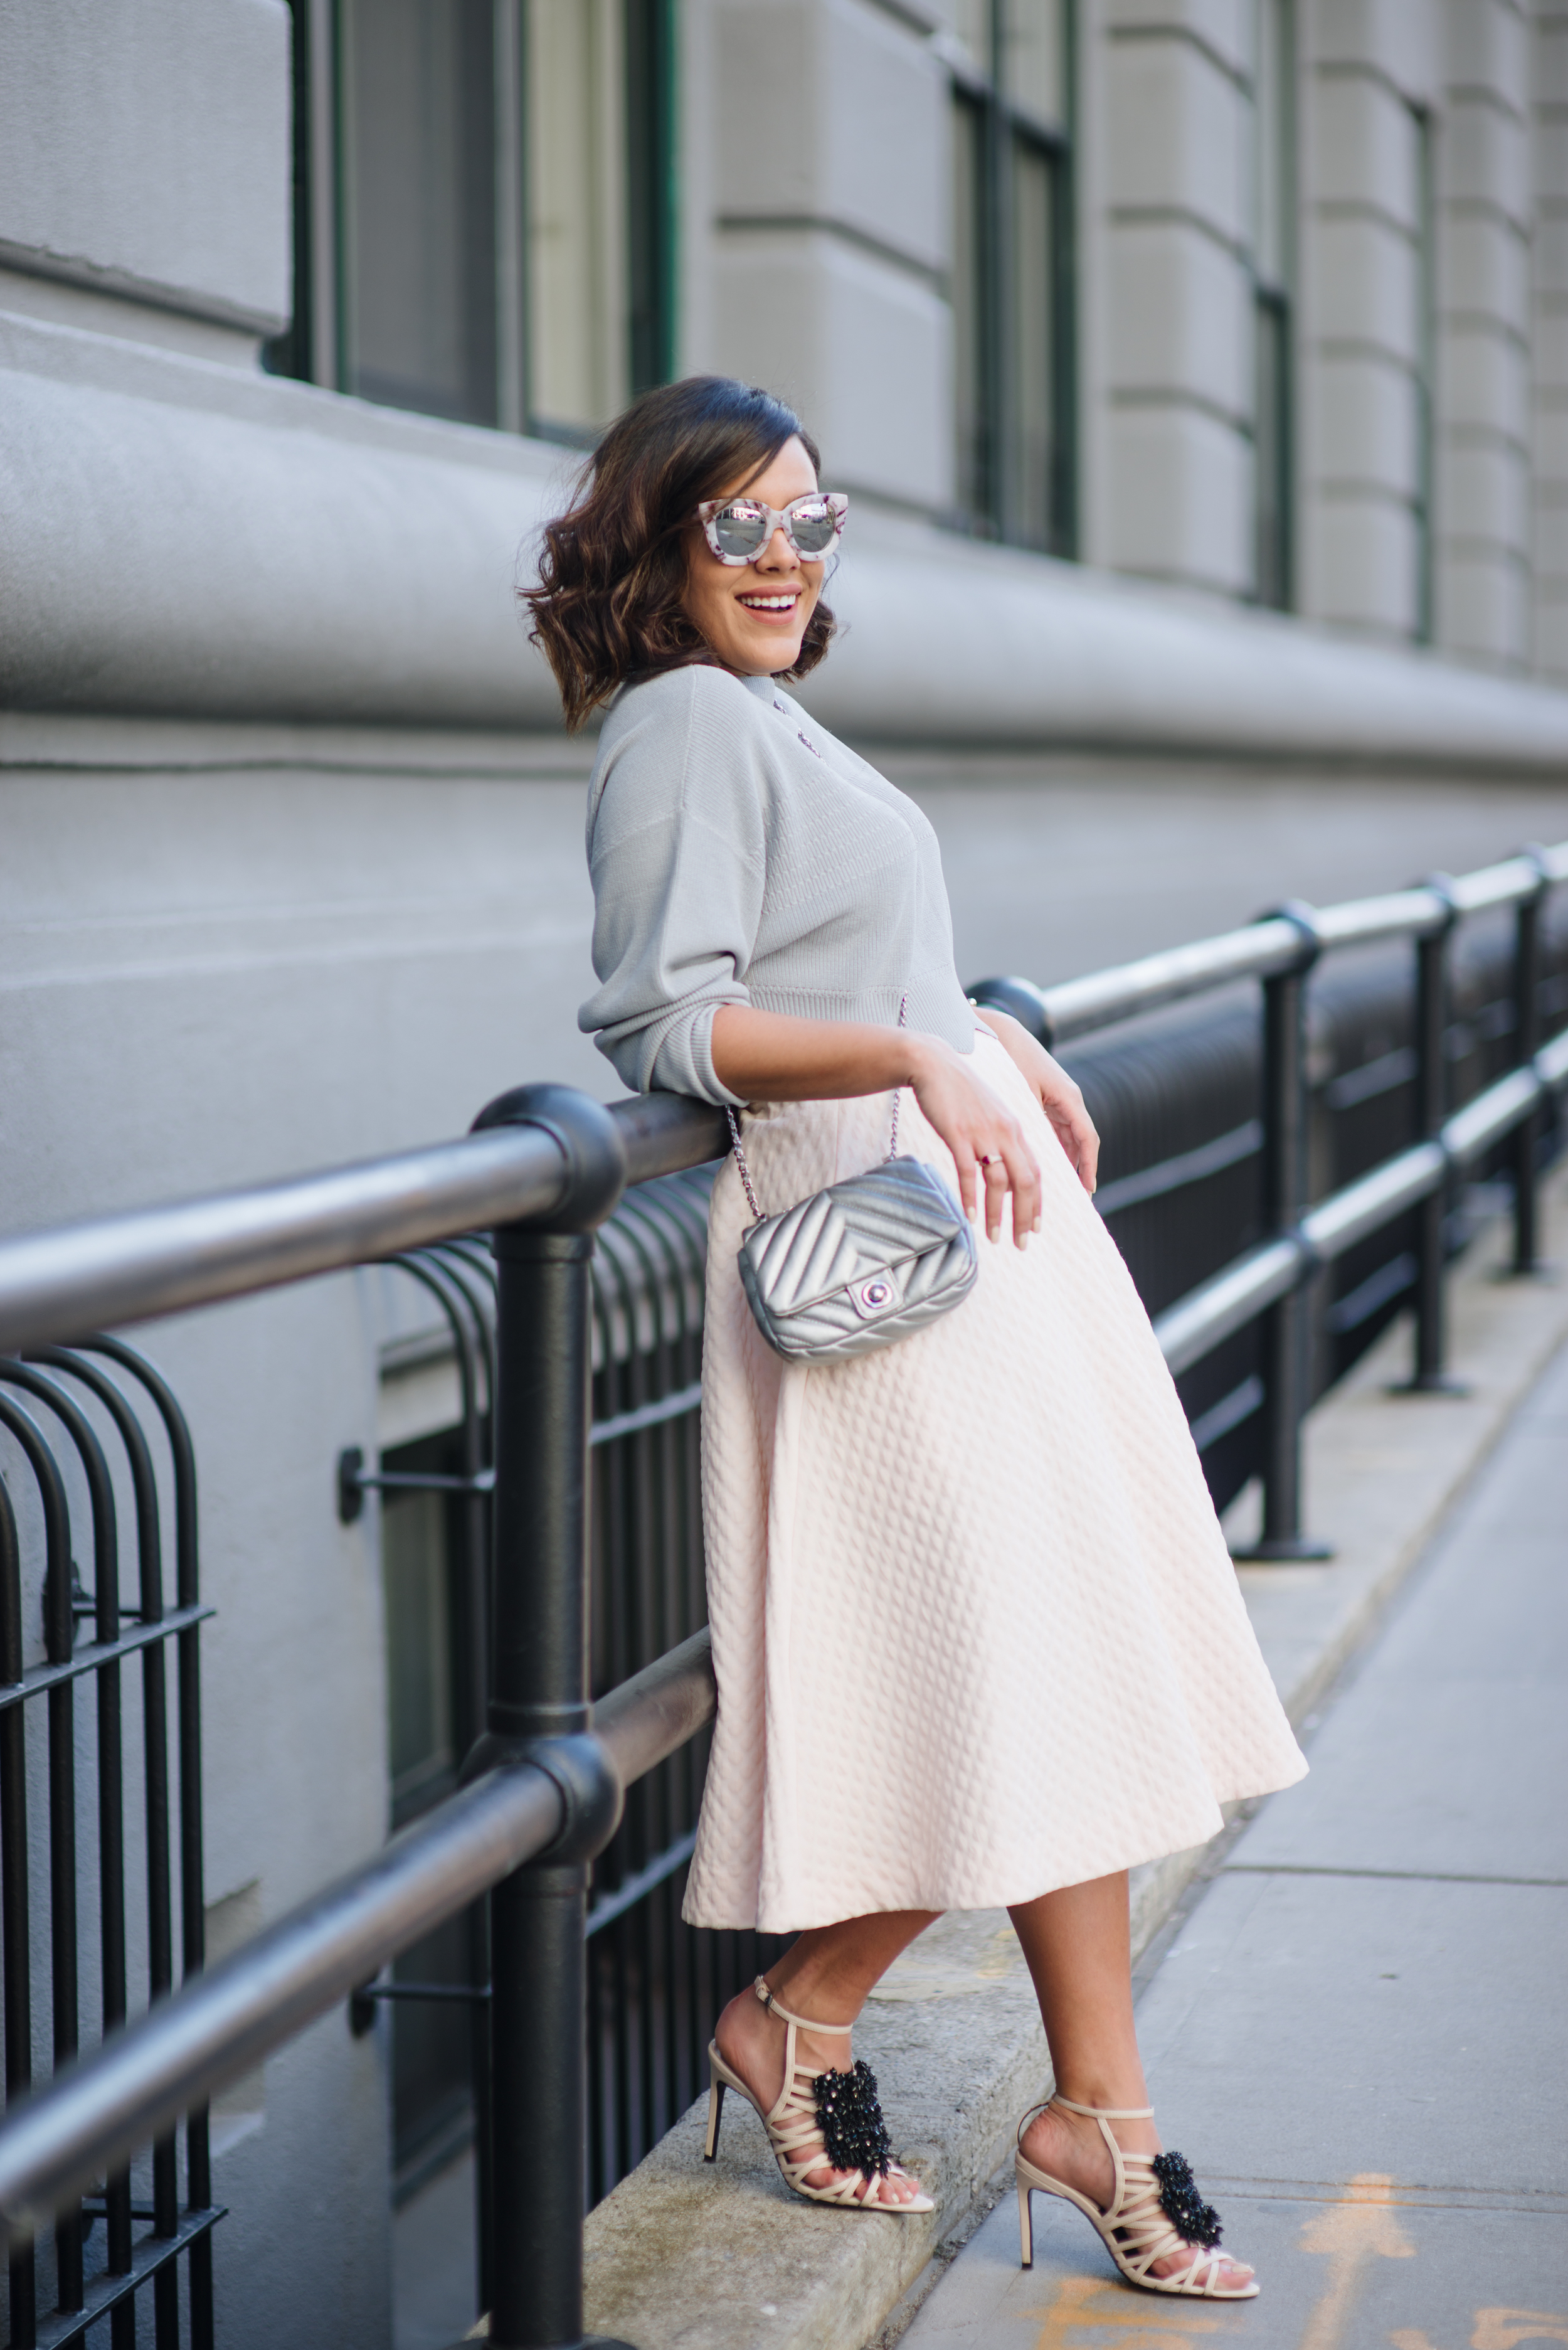 how-to-wear-dior-inspired-scalloped-sweater-spring-outfit-ideas-what-to-wear-latin-new-york-city-blogger.jpg